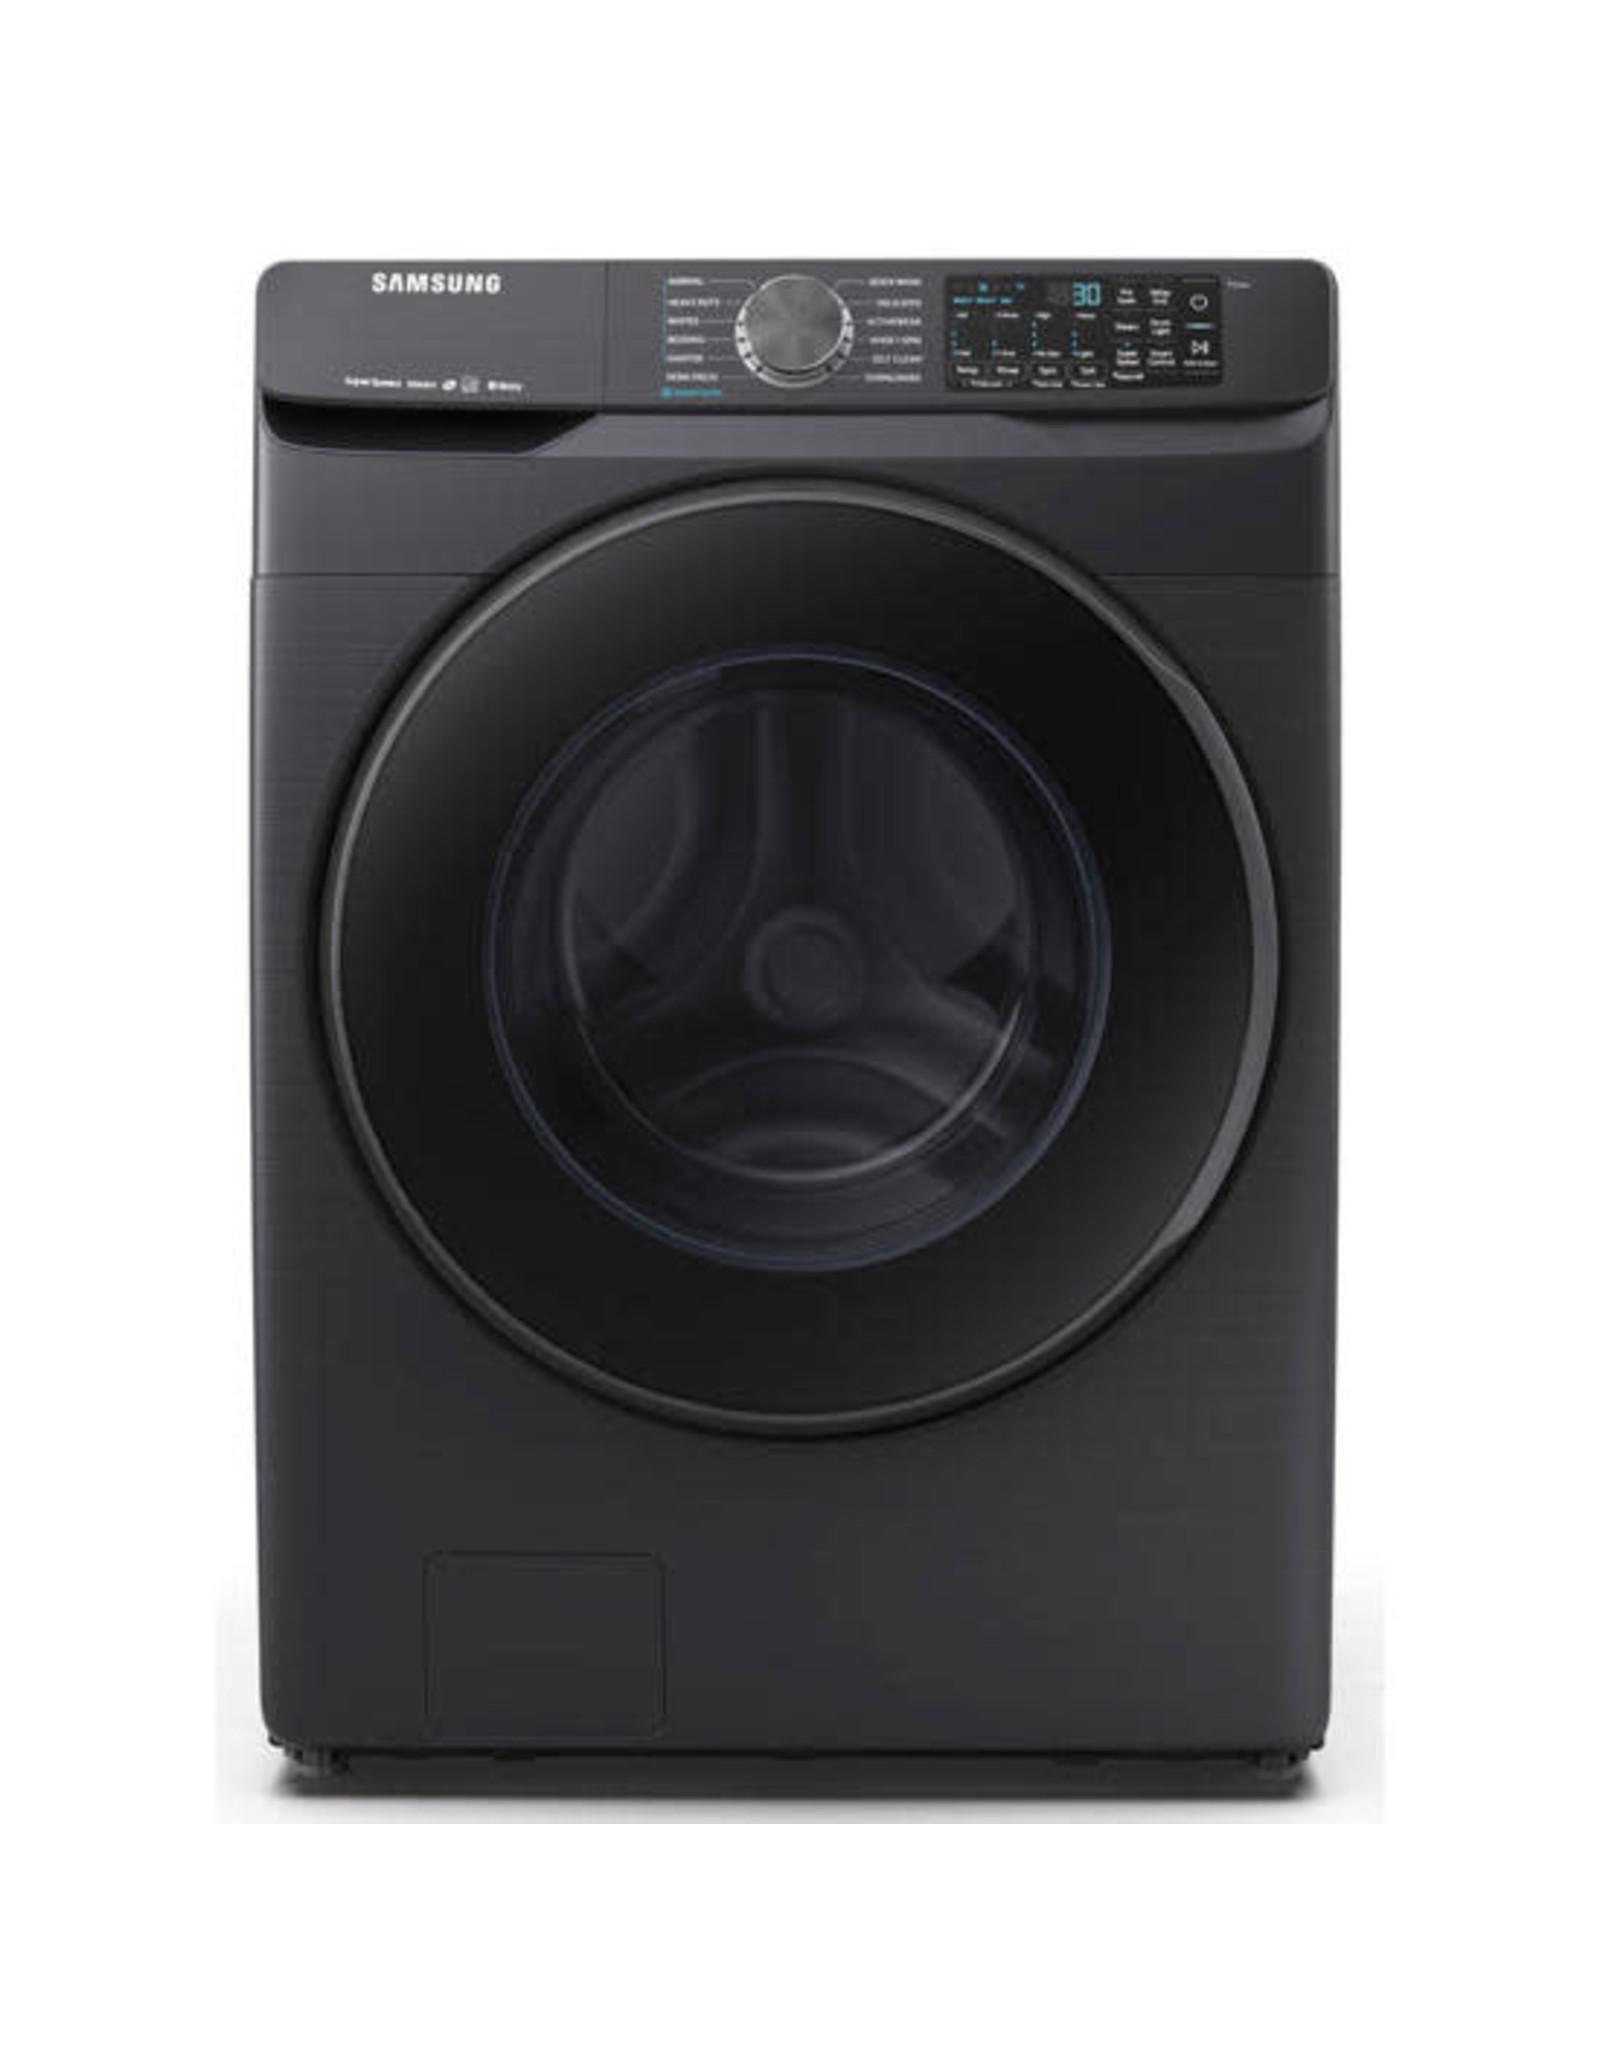 SAMSUNG Samsung 5.0 cu. ft. High-Efficiency Black Stainless Steel Front Load Washing Machine with Super Speed and Steam, ENERGY STAR